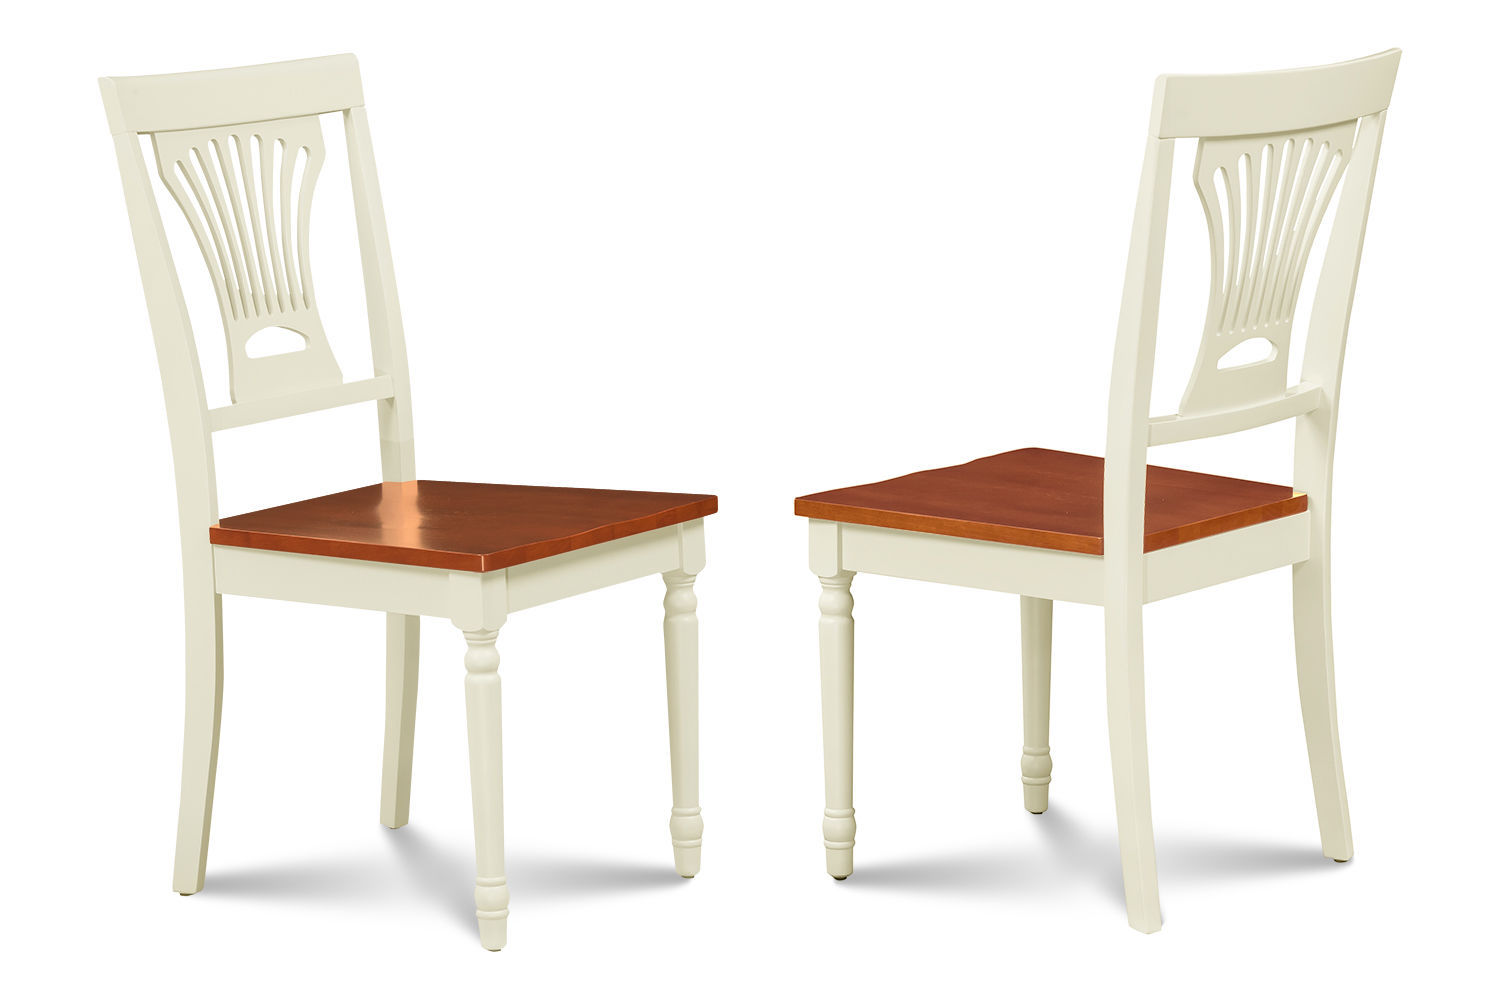 SET OF 4 DINING KITCHEN SIDE CHAIR WITH WOODEN SEAT IN BUTTERMILK & CHERRY